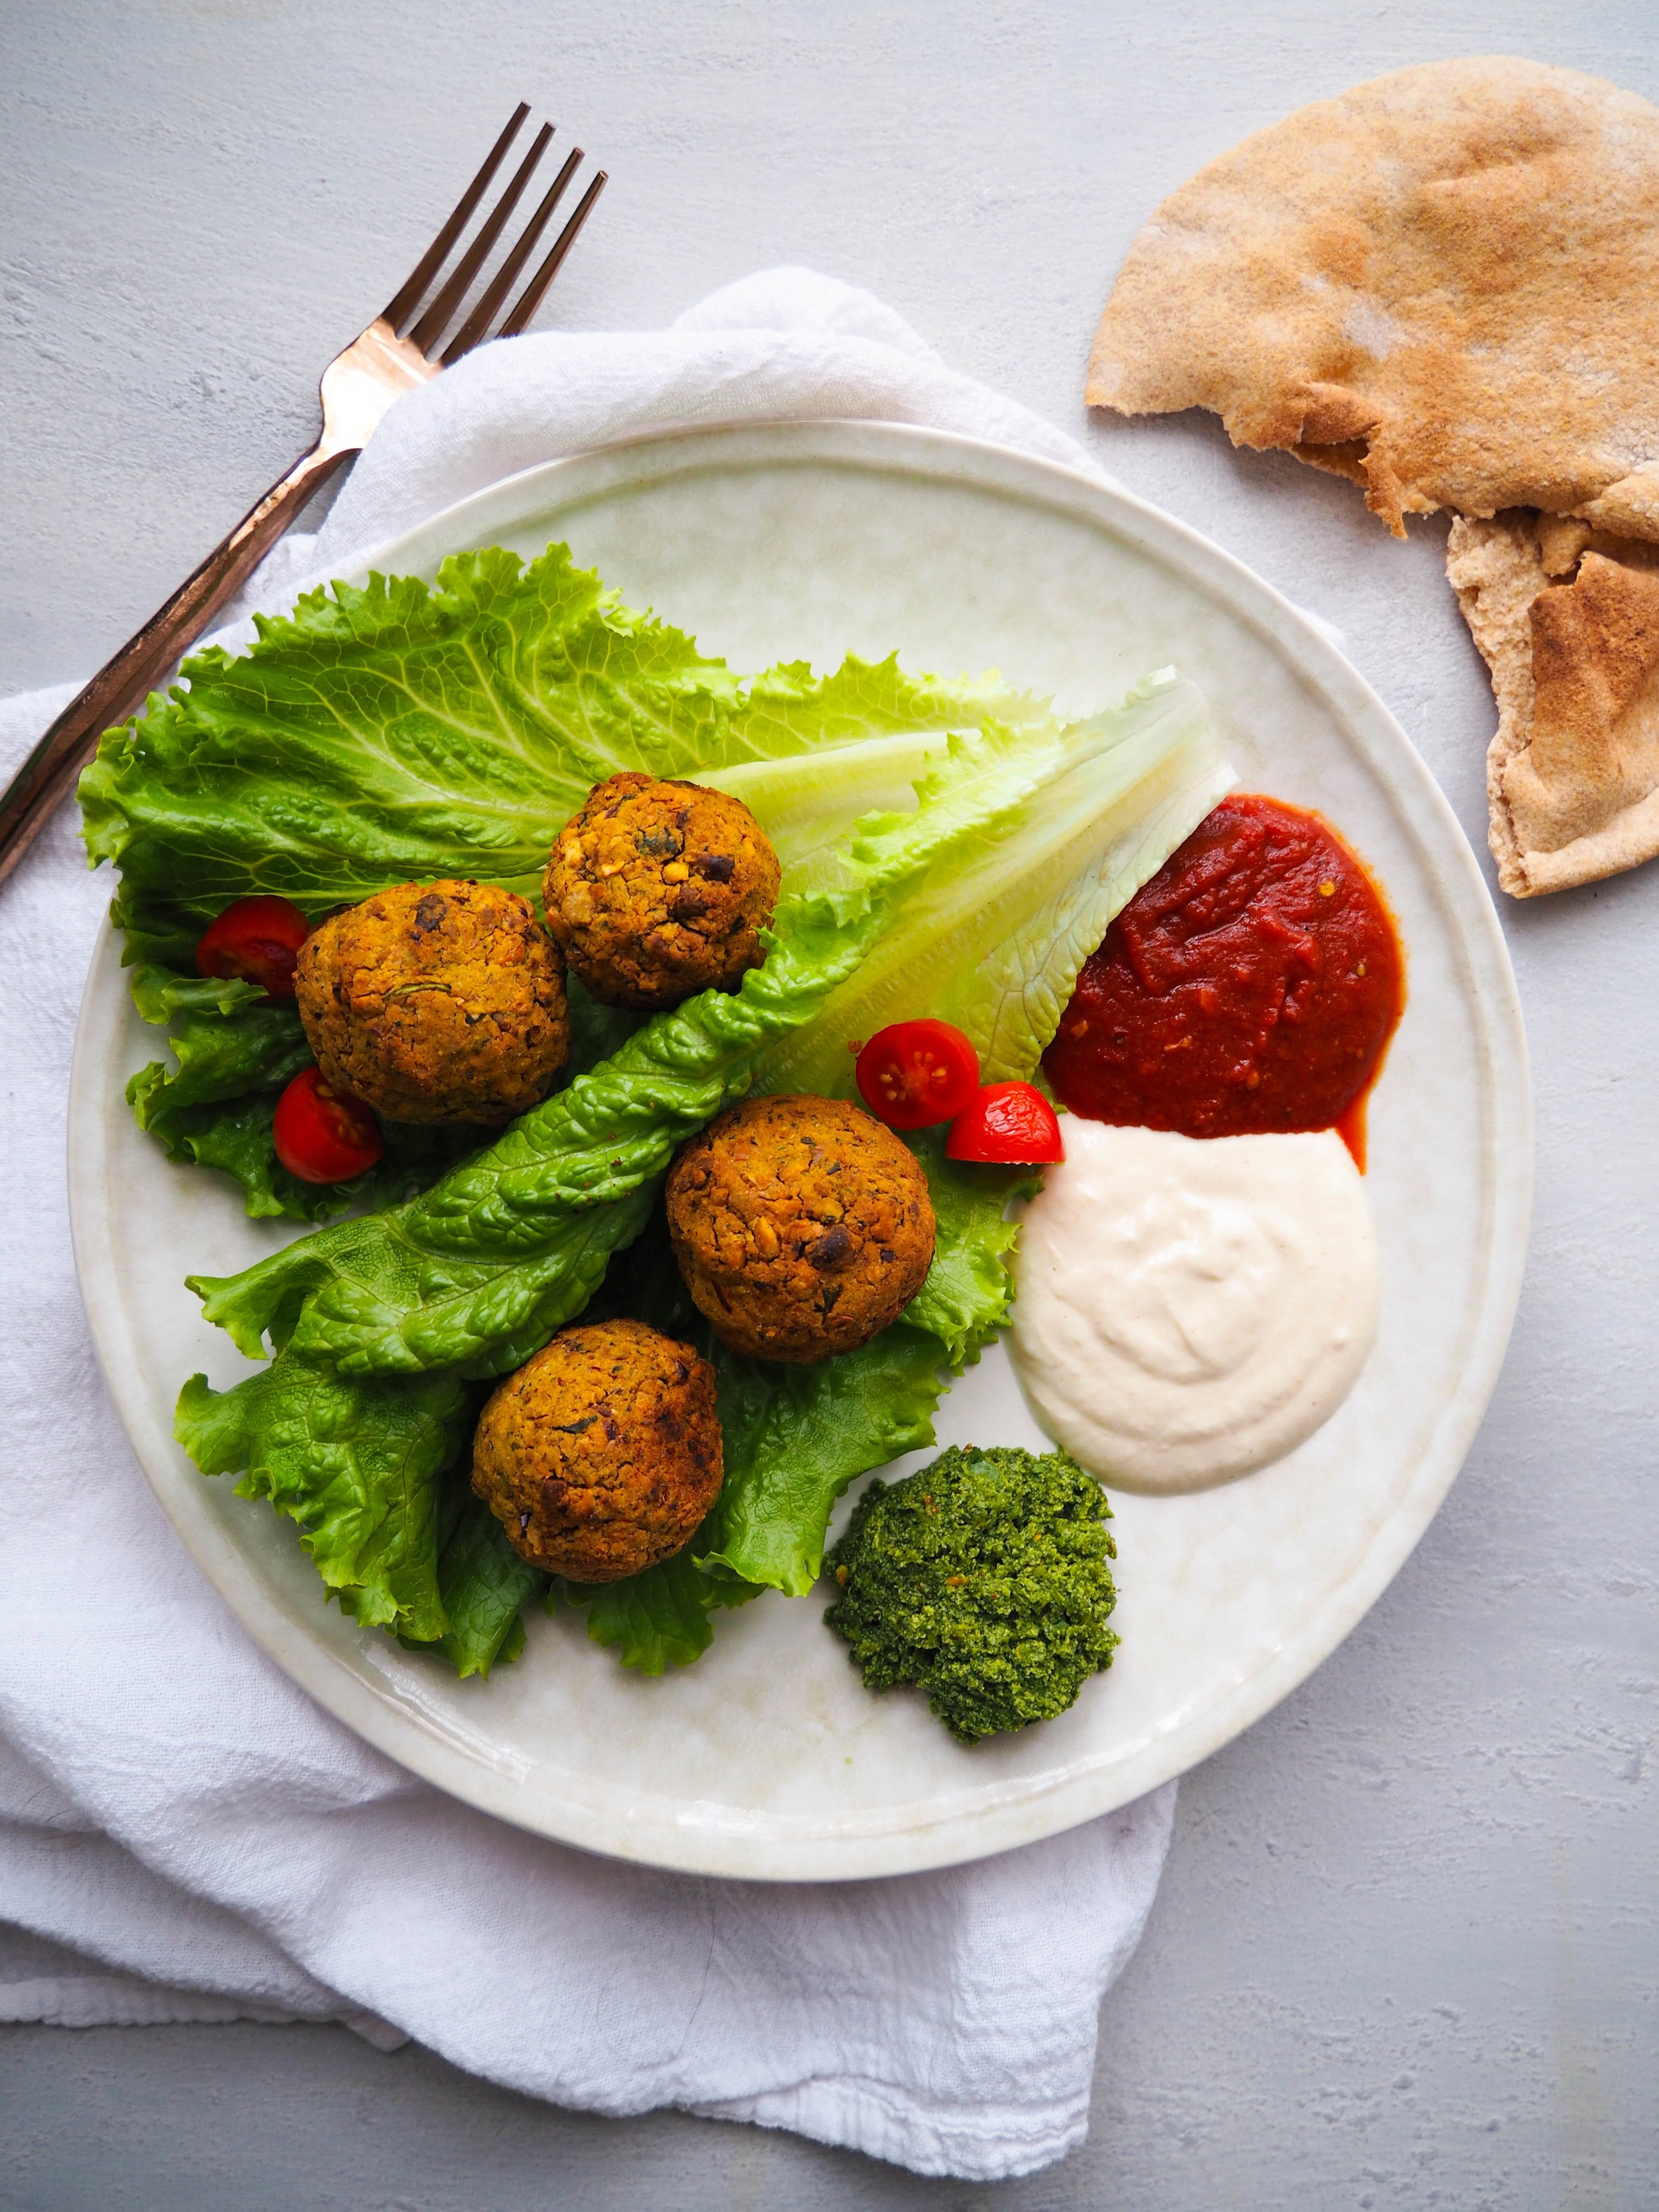 Easy Baked Green Falafel with Three Dipping Sauces